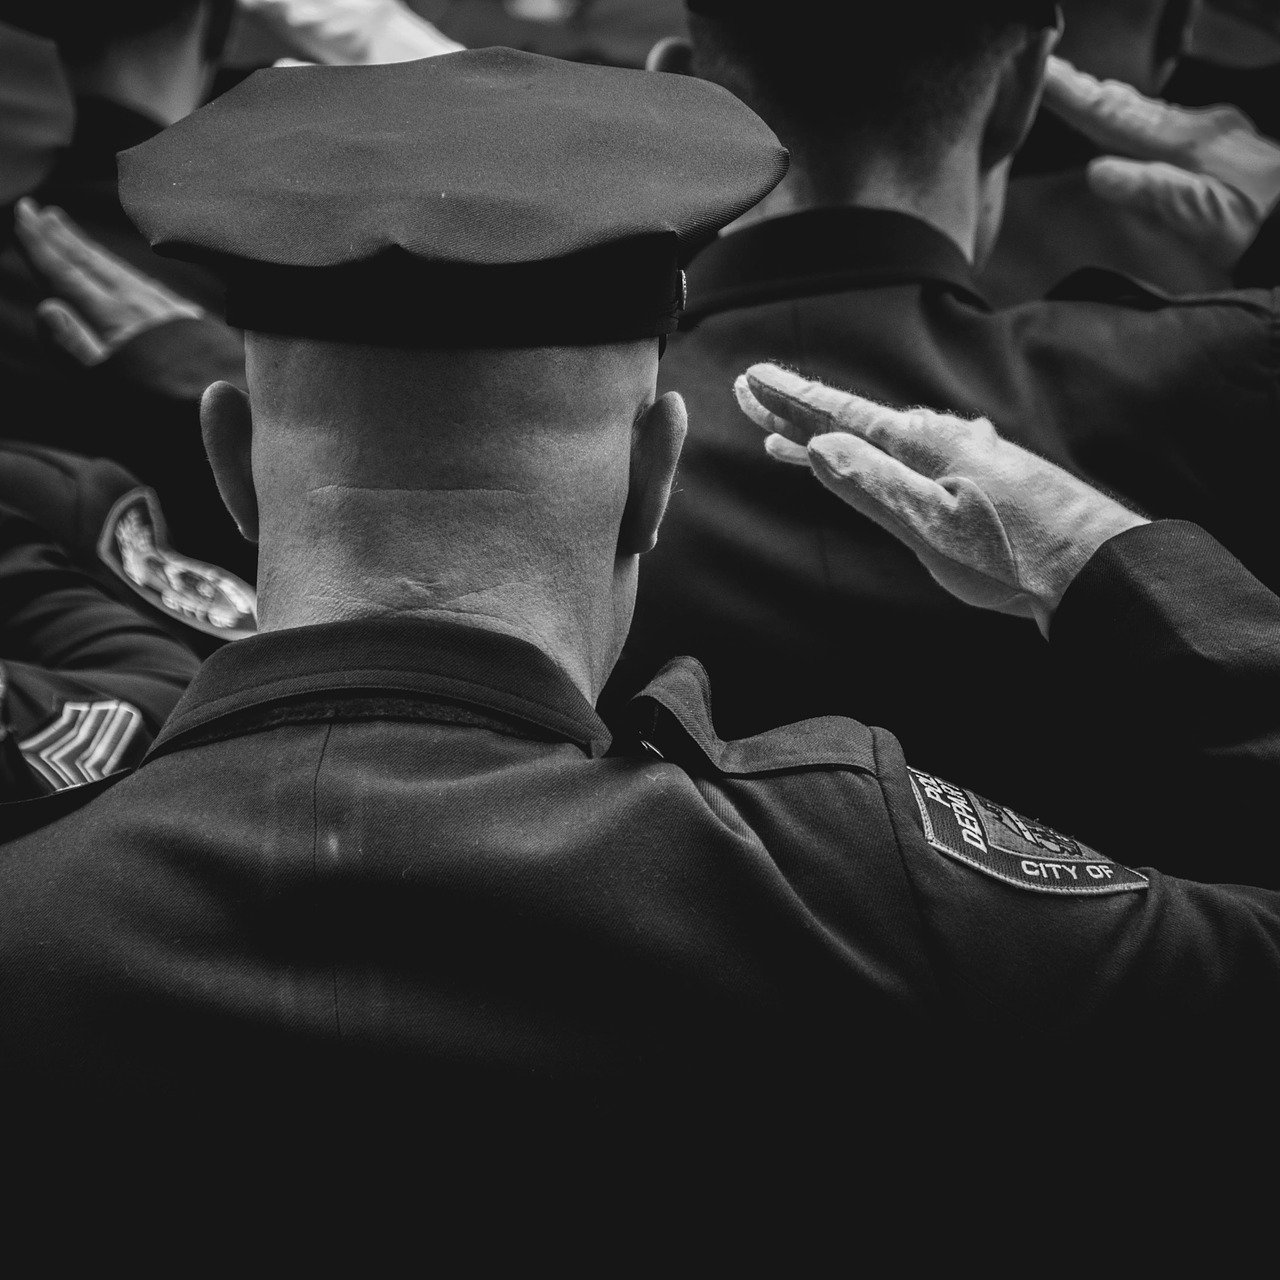 Unconscious Bias in Policing